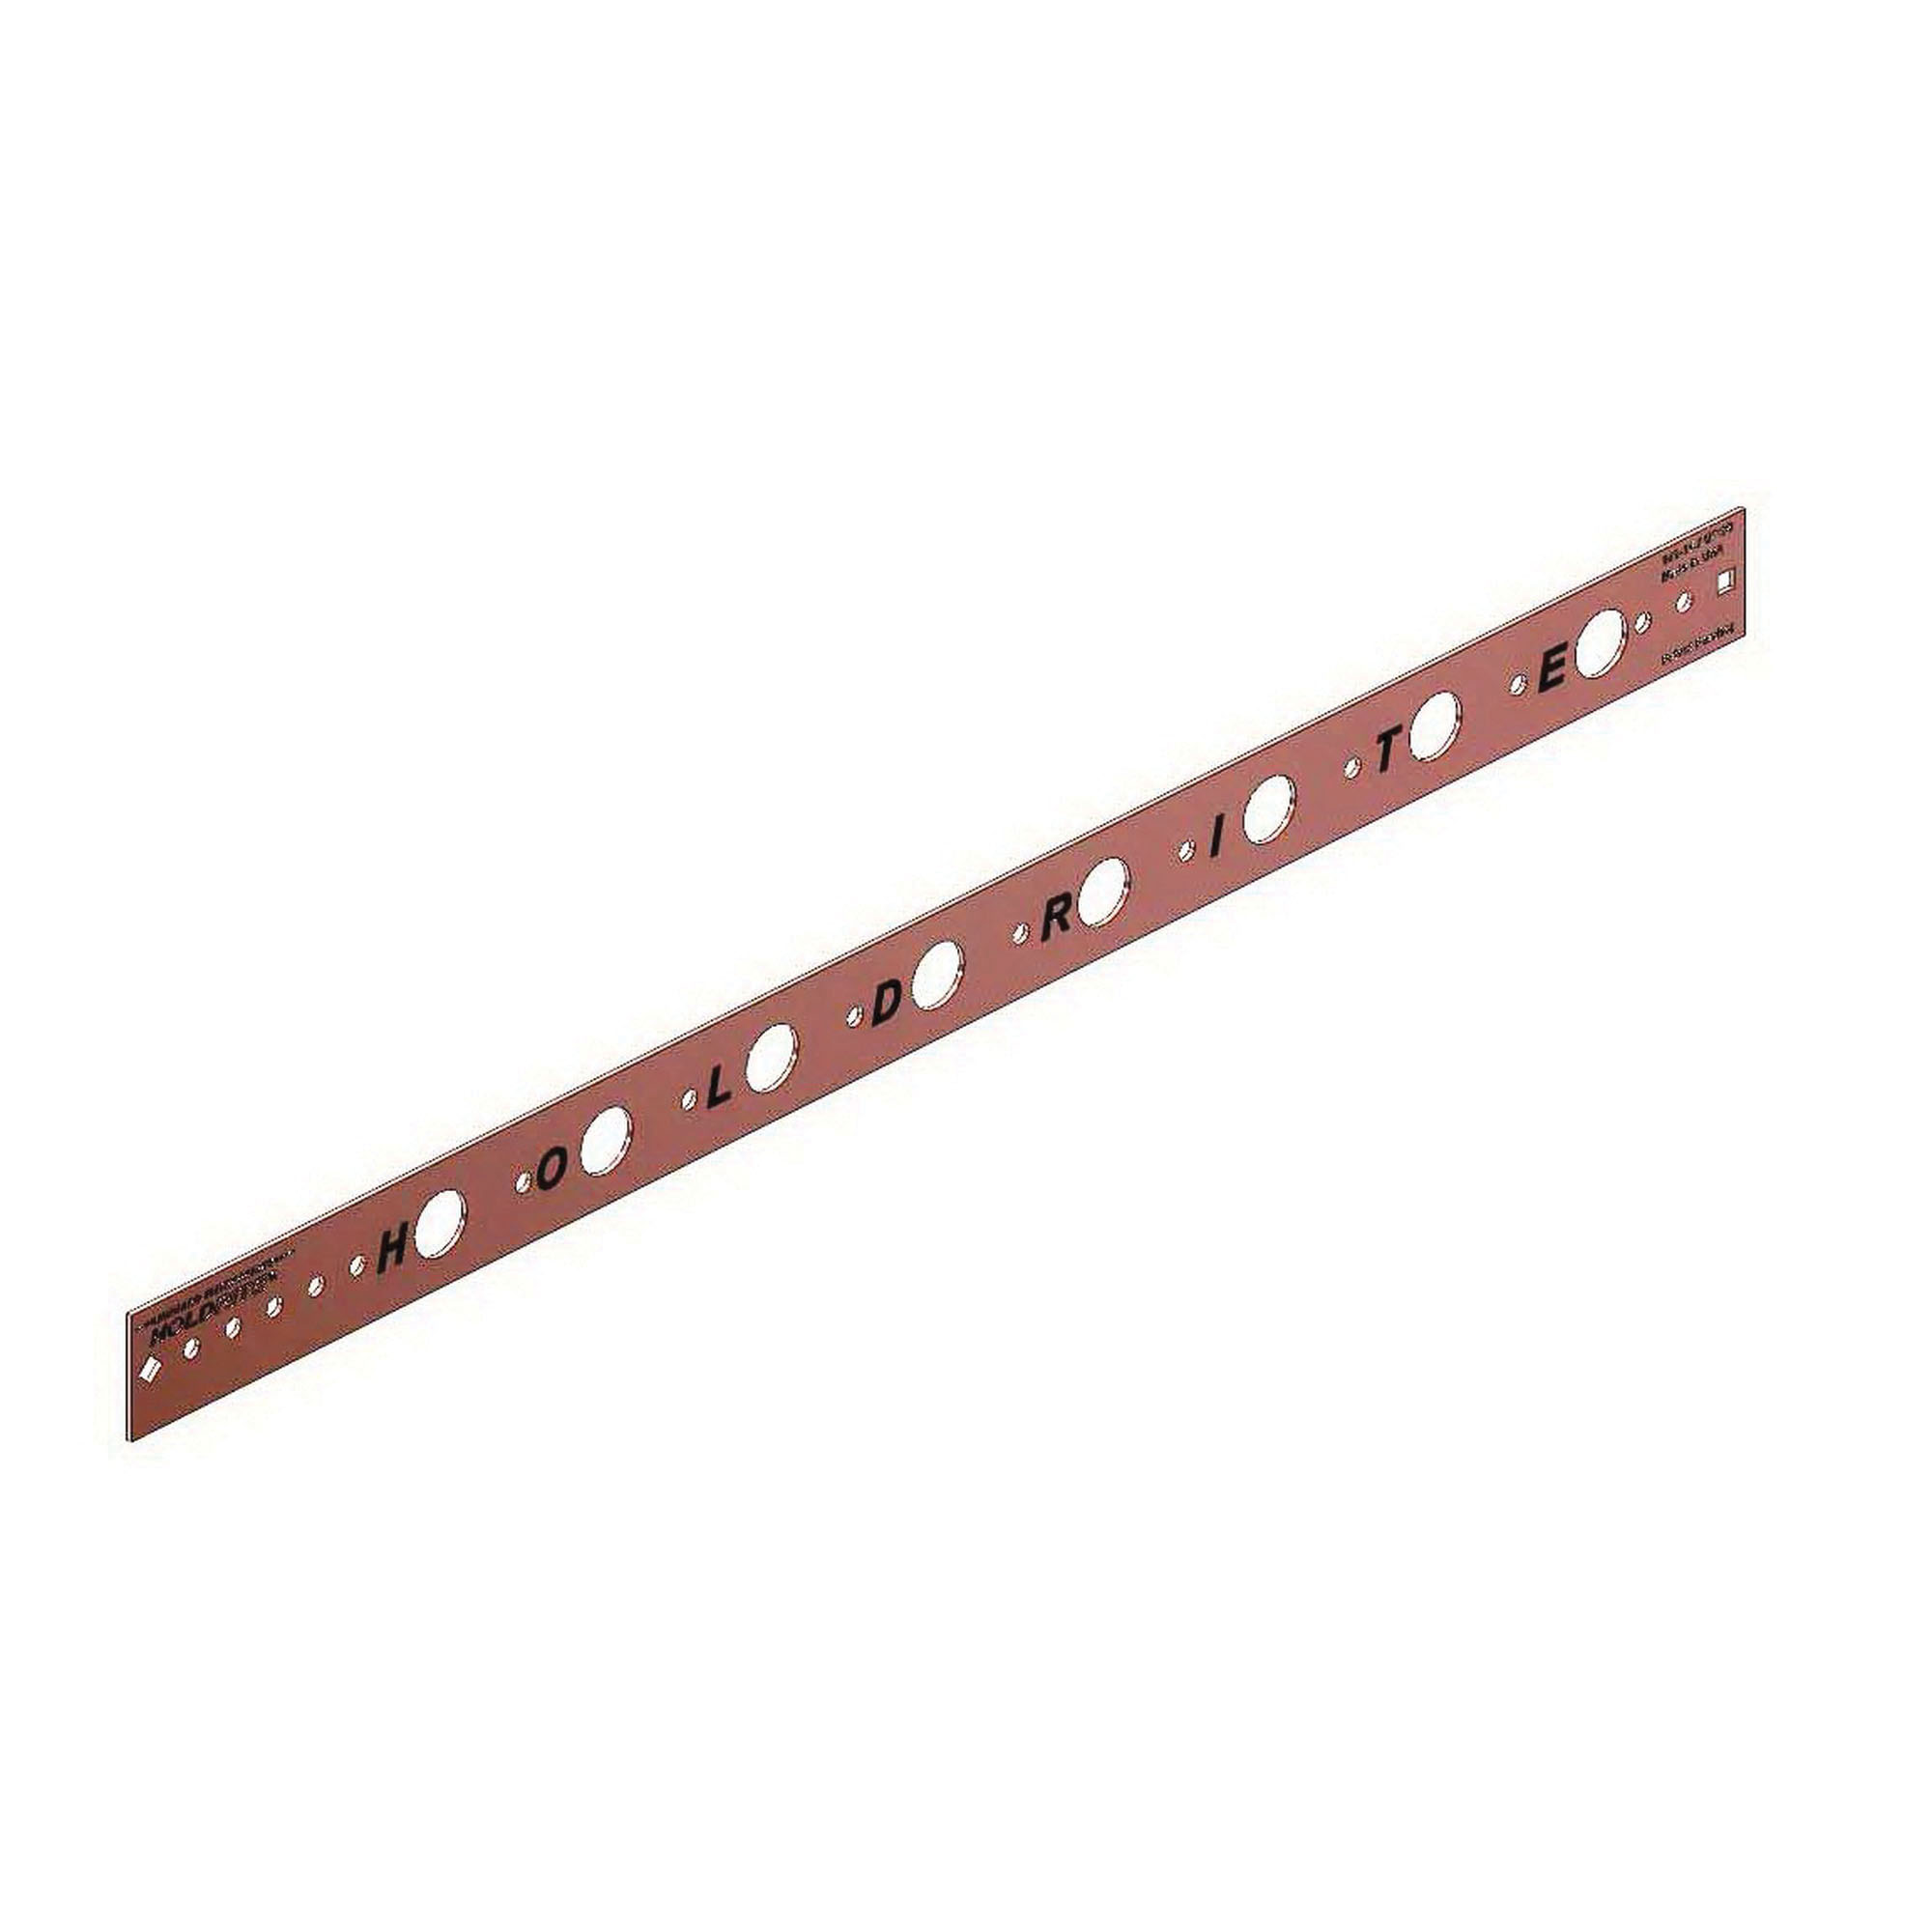 Holdrite® 101-26 Copper Bonded Cold Rolled Steel Flat Bracket, 1/2 in CTS, 26 in L